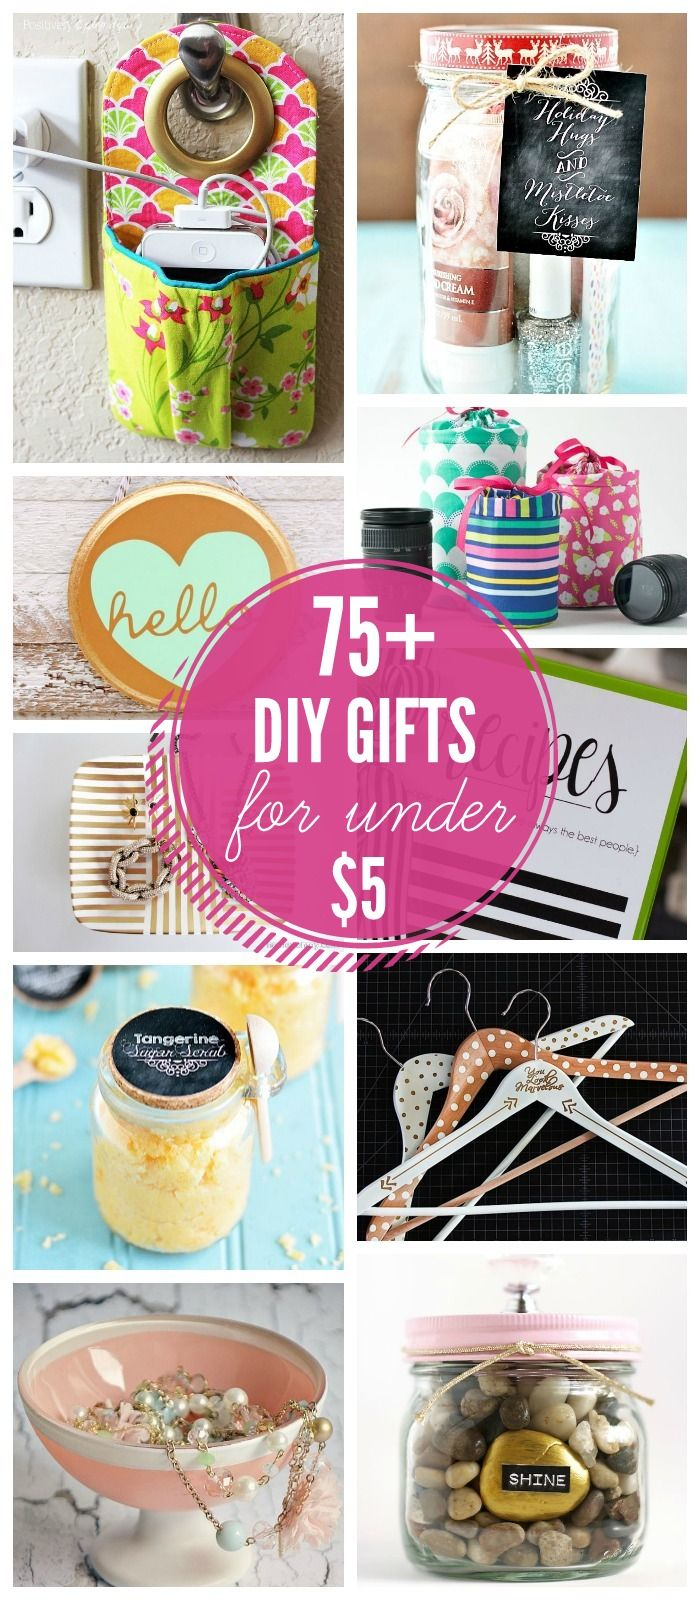 crafting gift ideas 75 handmade gift ideas for 5 a great collection 1728